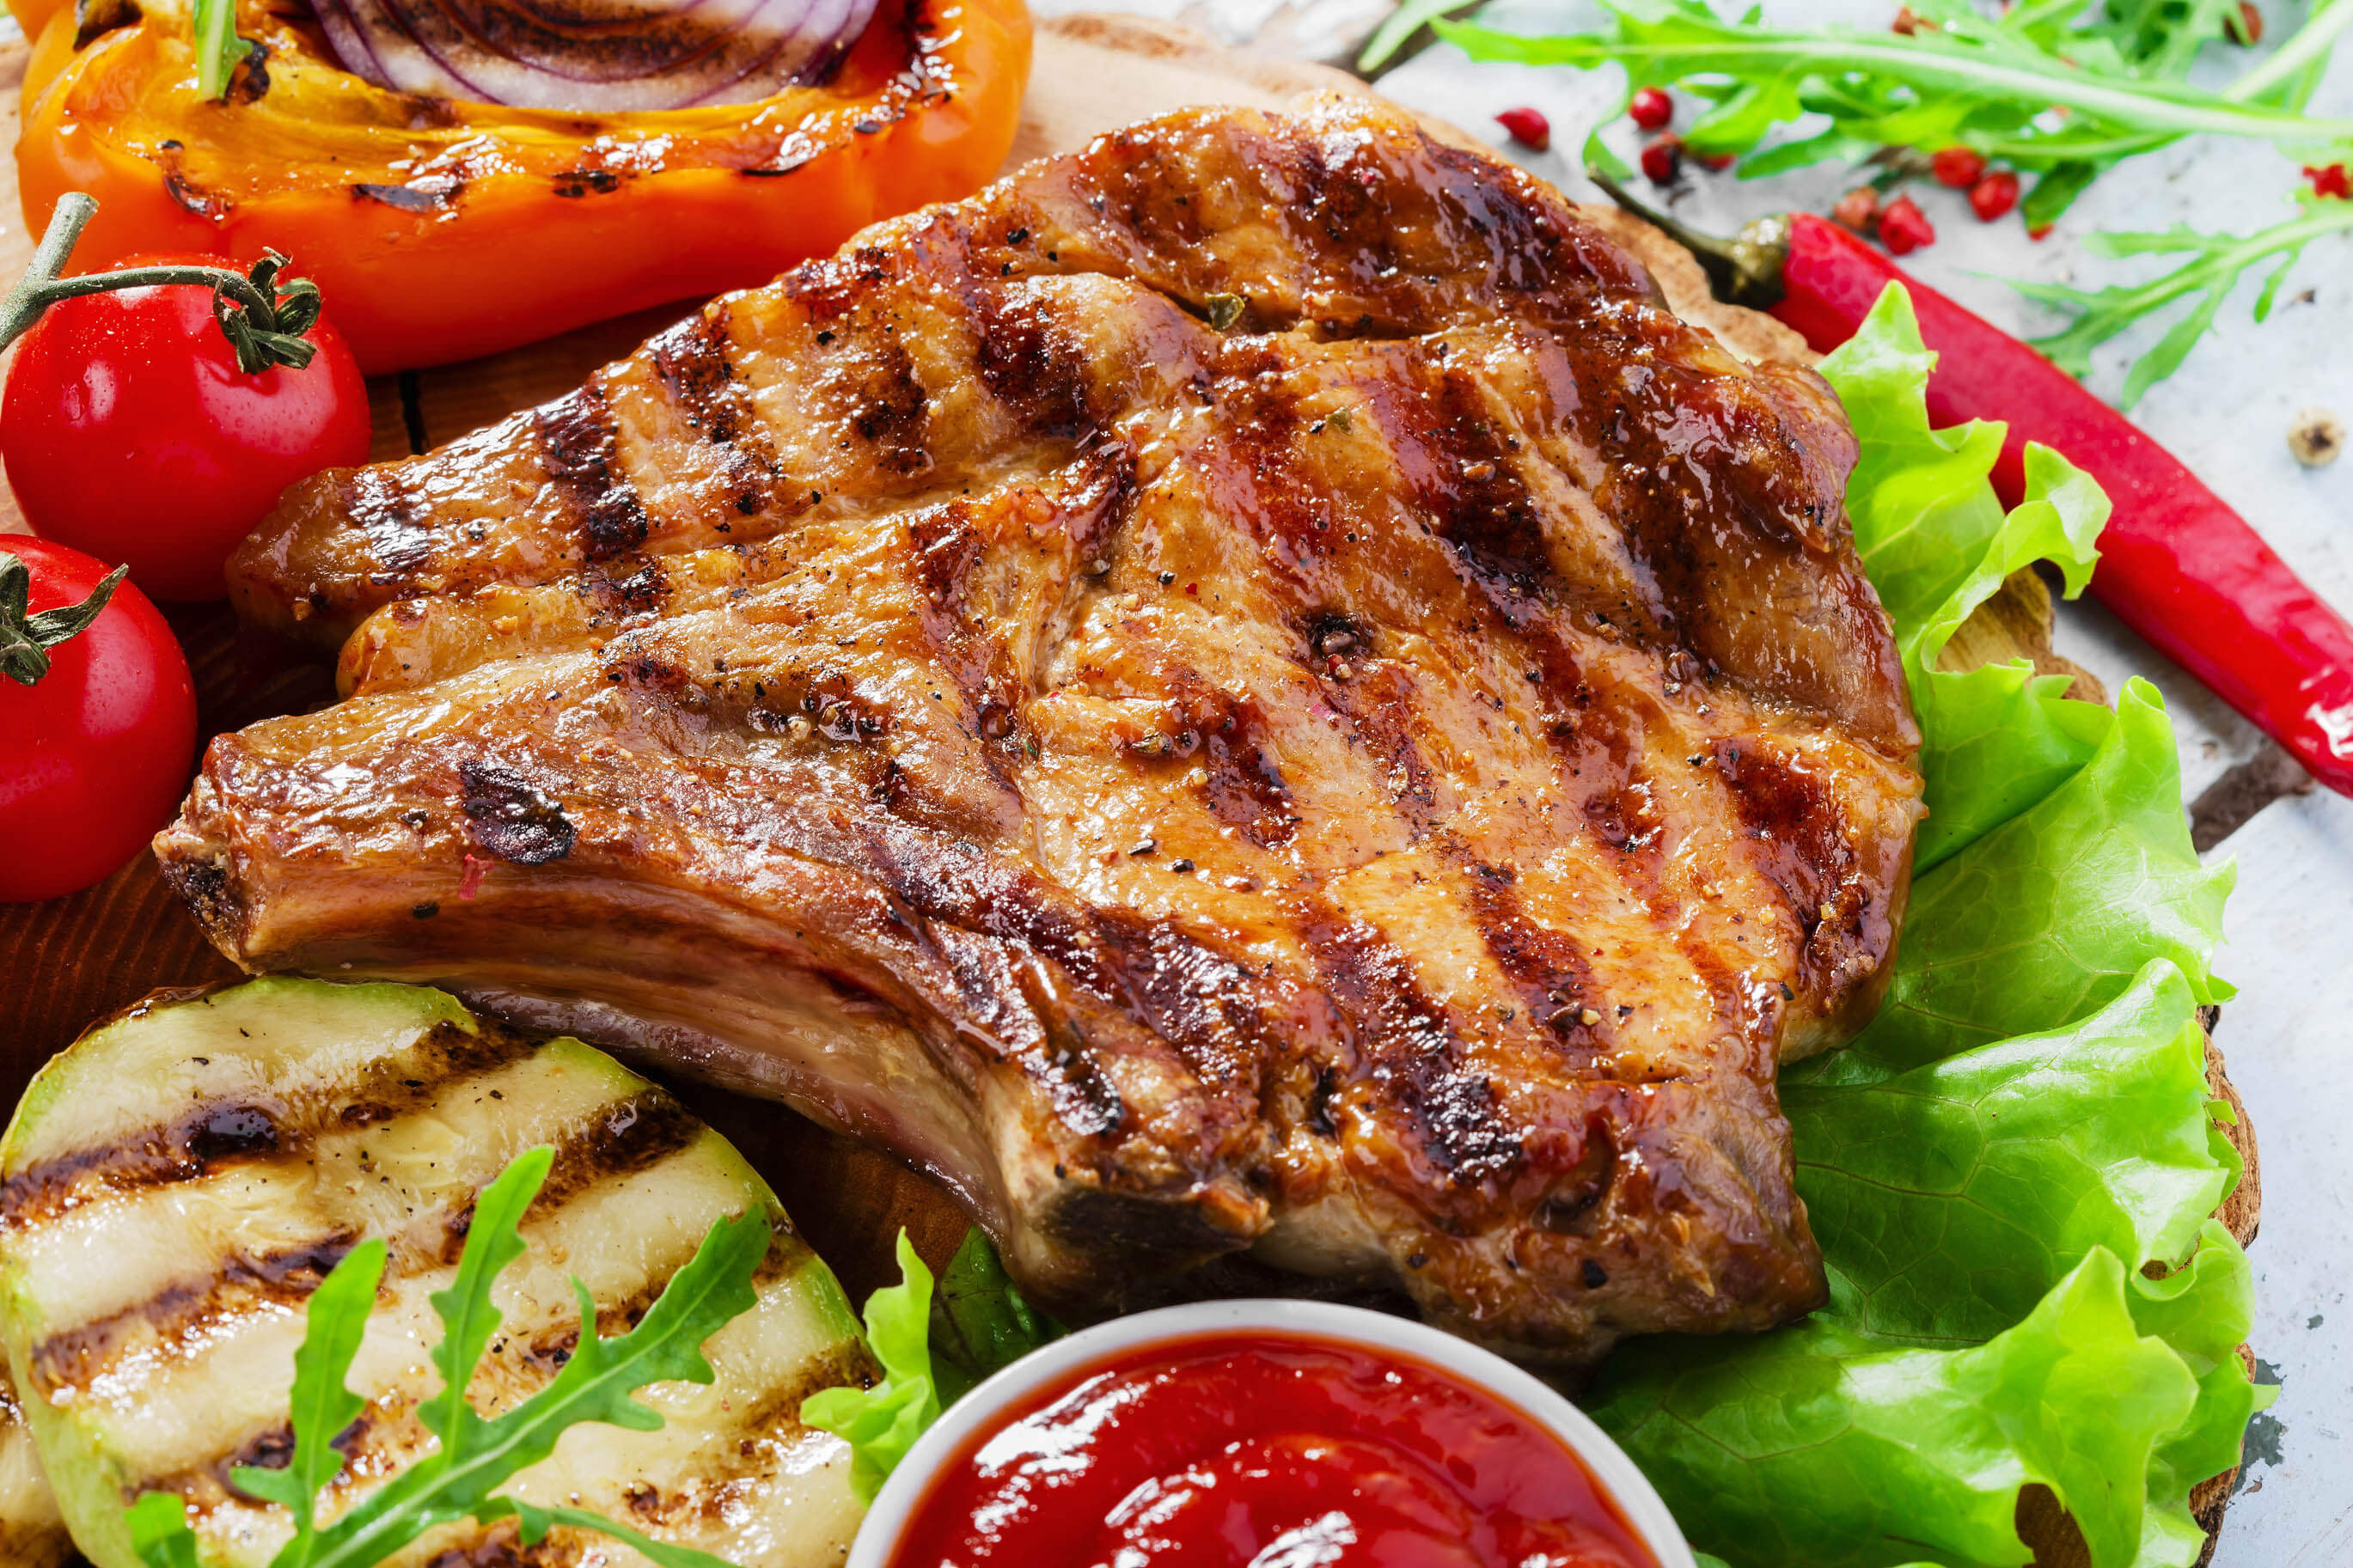 Heart Healthy Pork Recipes  Genetic engineering could make pork heart healthy if not